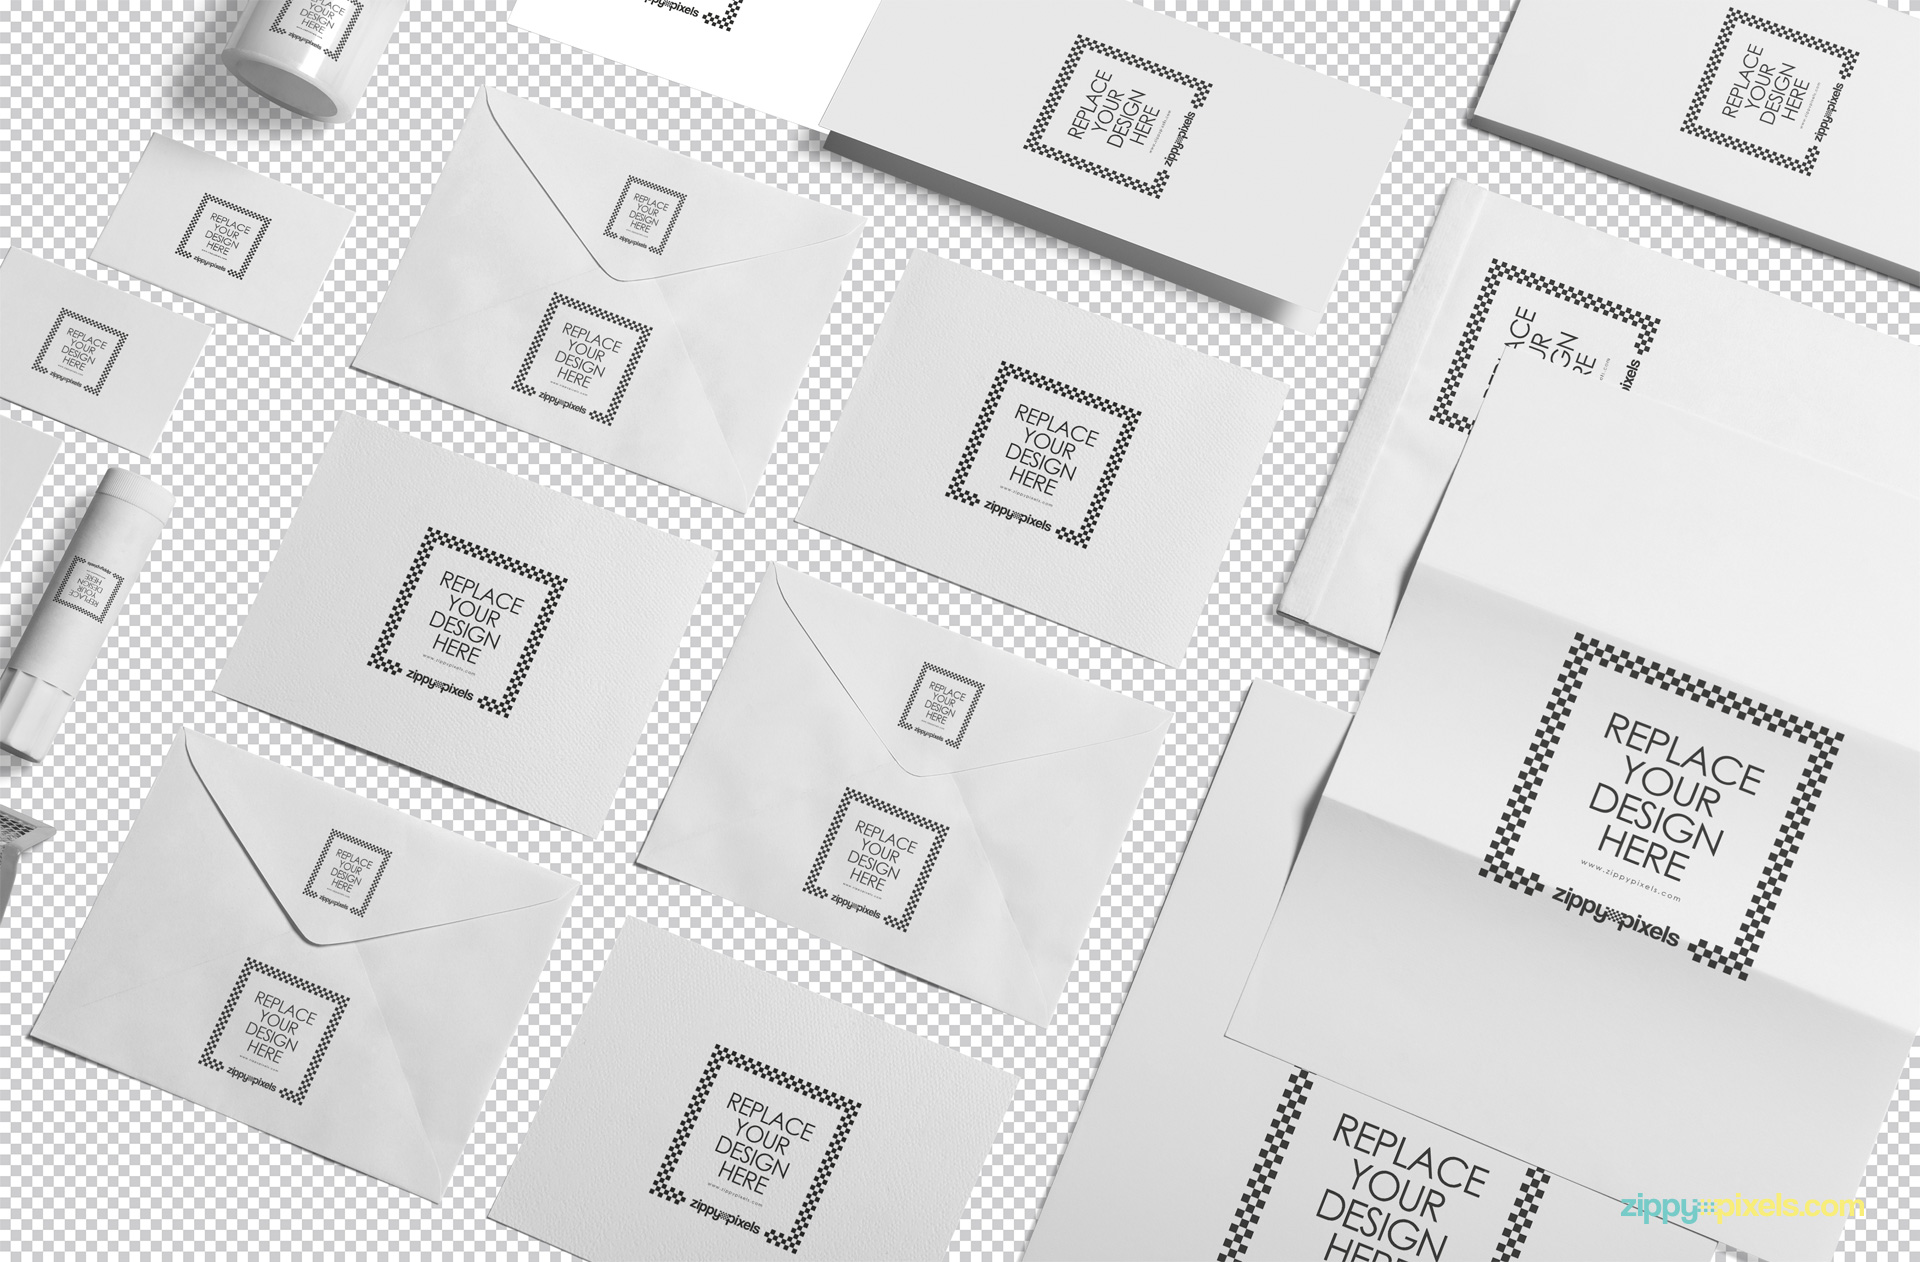 Plain white stationery items isolated with greyscale background.